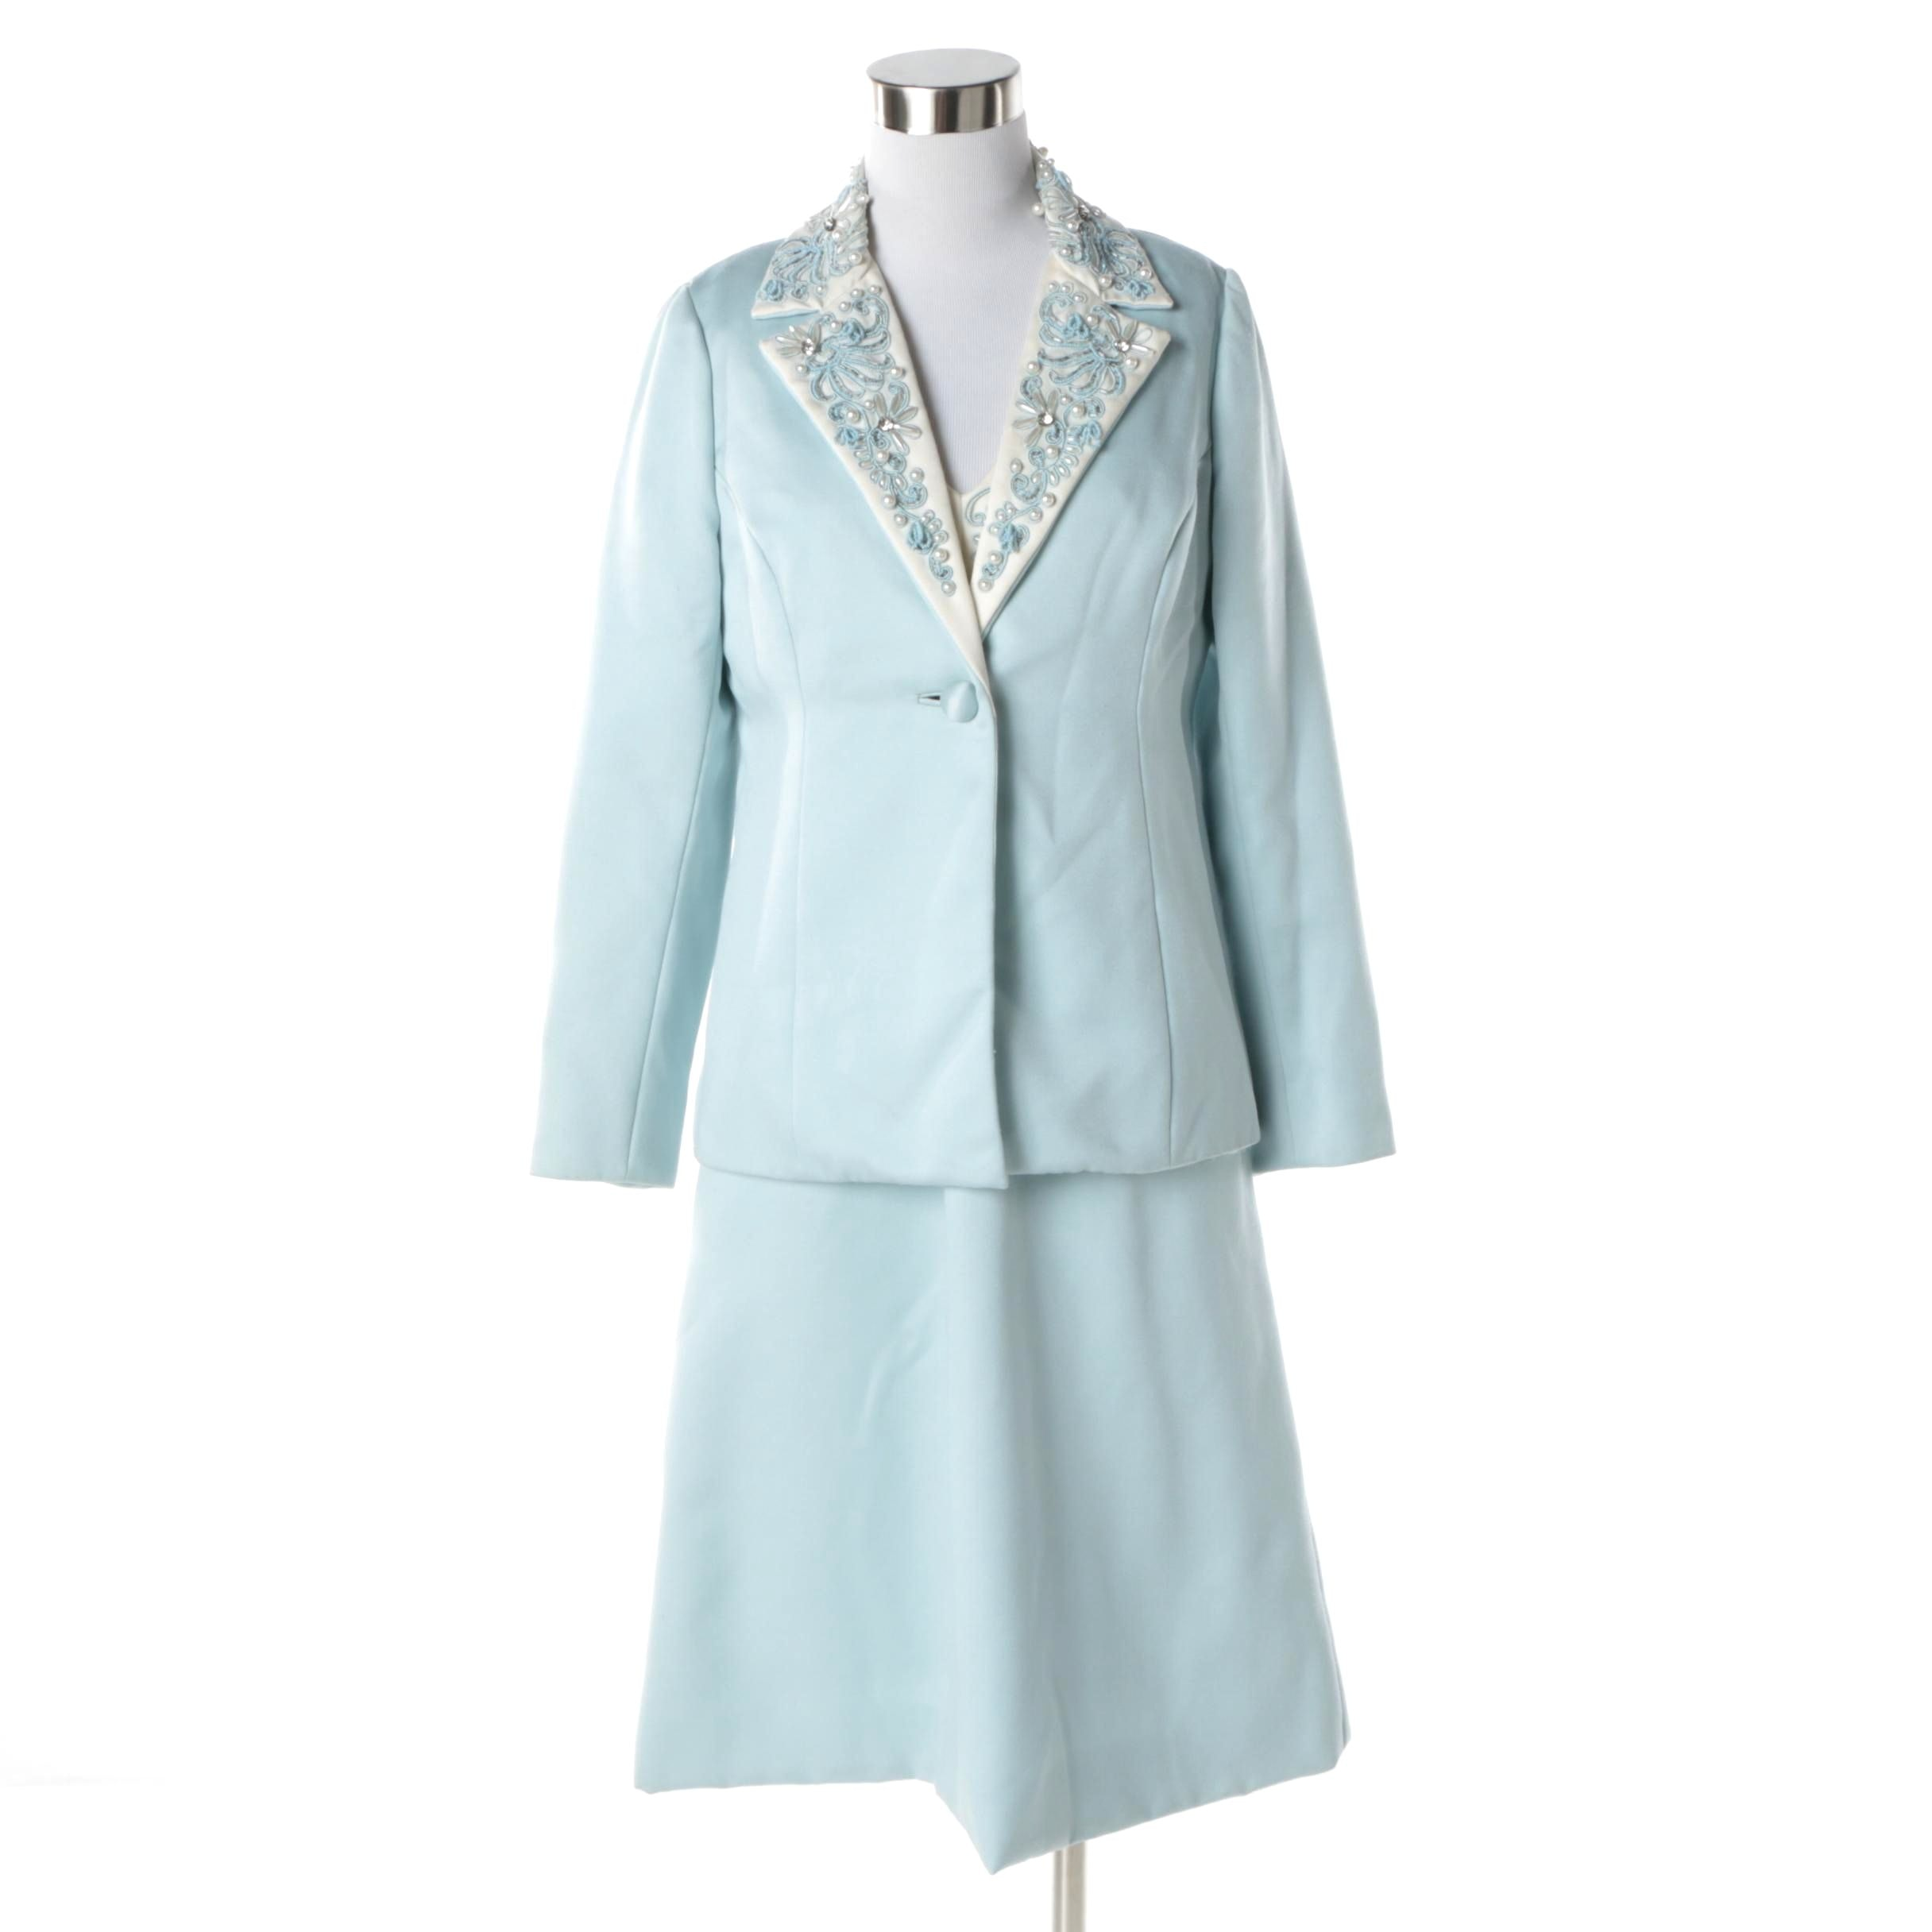 1960s Vintage Sky Blue Rhinestone Pearl Bead and Floral Sequin Dress with Jacket